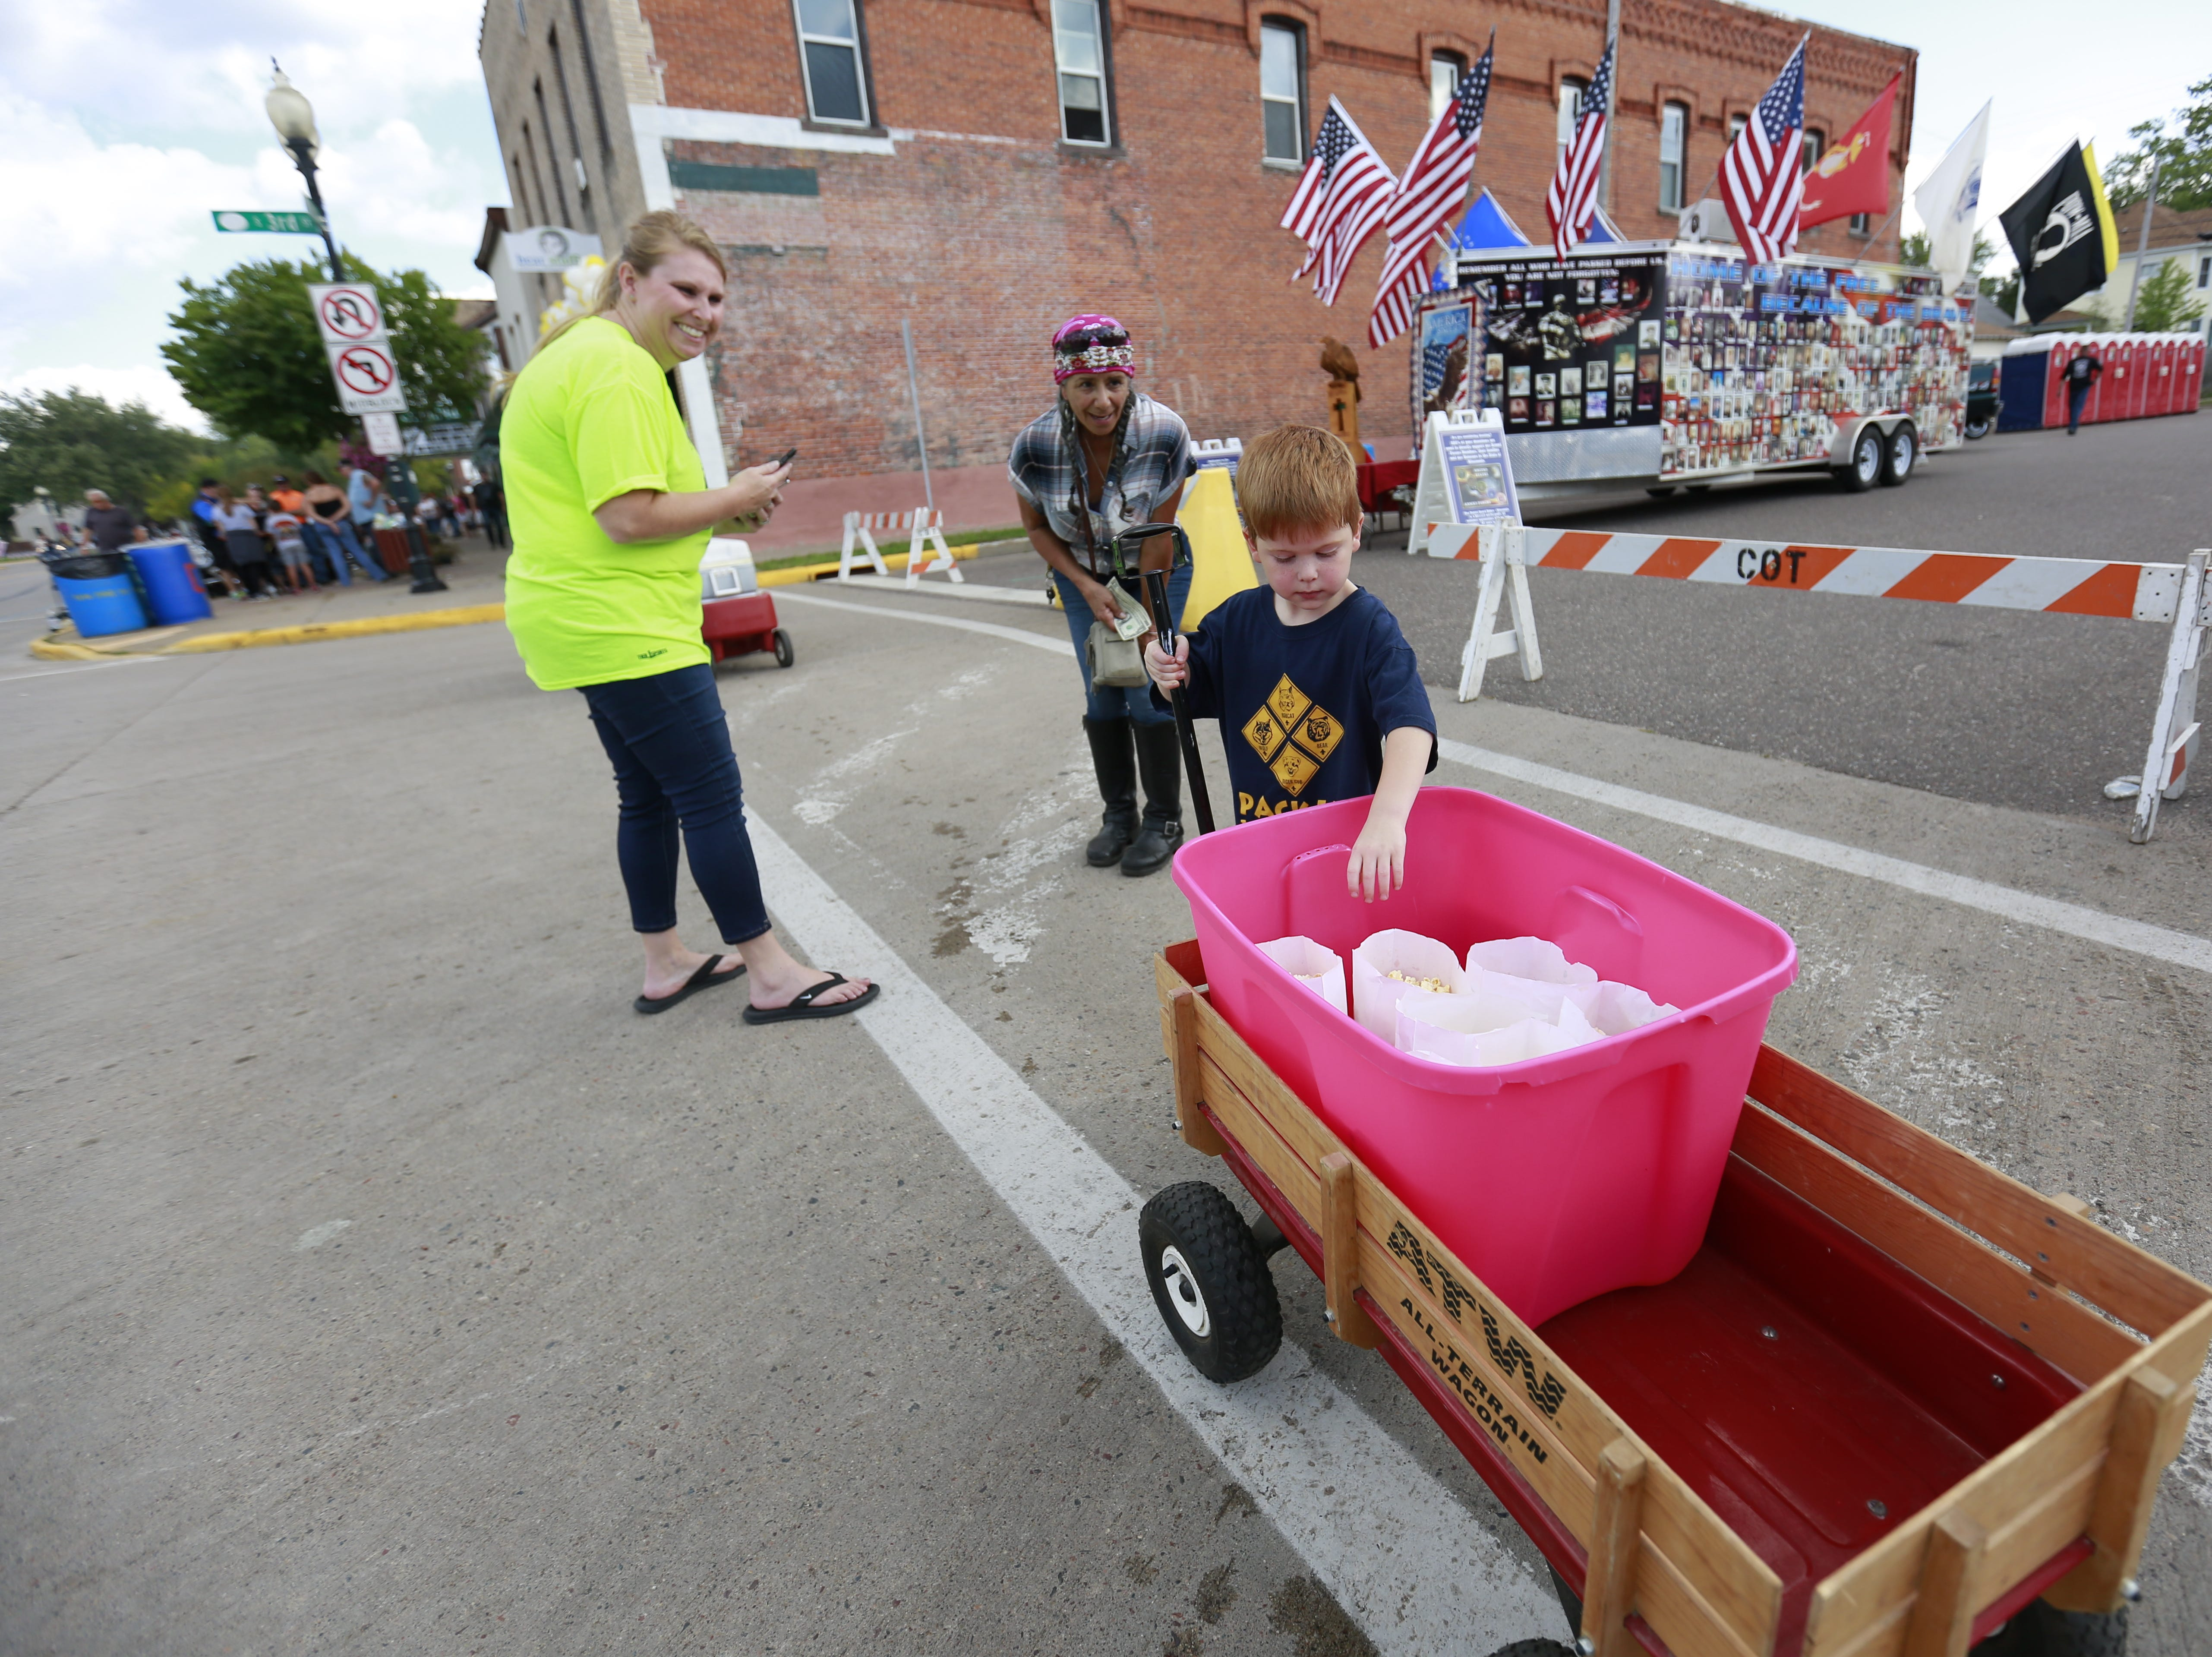 Brod Younker, right, sells popcorns for his scout troop 548 during the 37th Annual Tomahawk Fall Ride Friday, Sept. 14, 2018, at downtown Tomahawk, Wis. T'xer Zhon Kha/USA TODAY NETWORK-Wisconsin